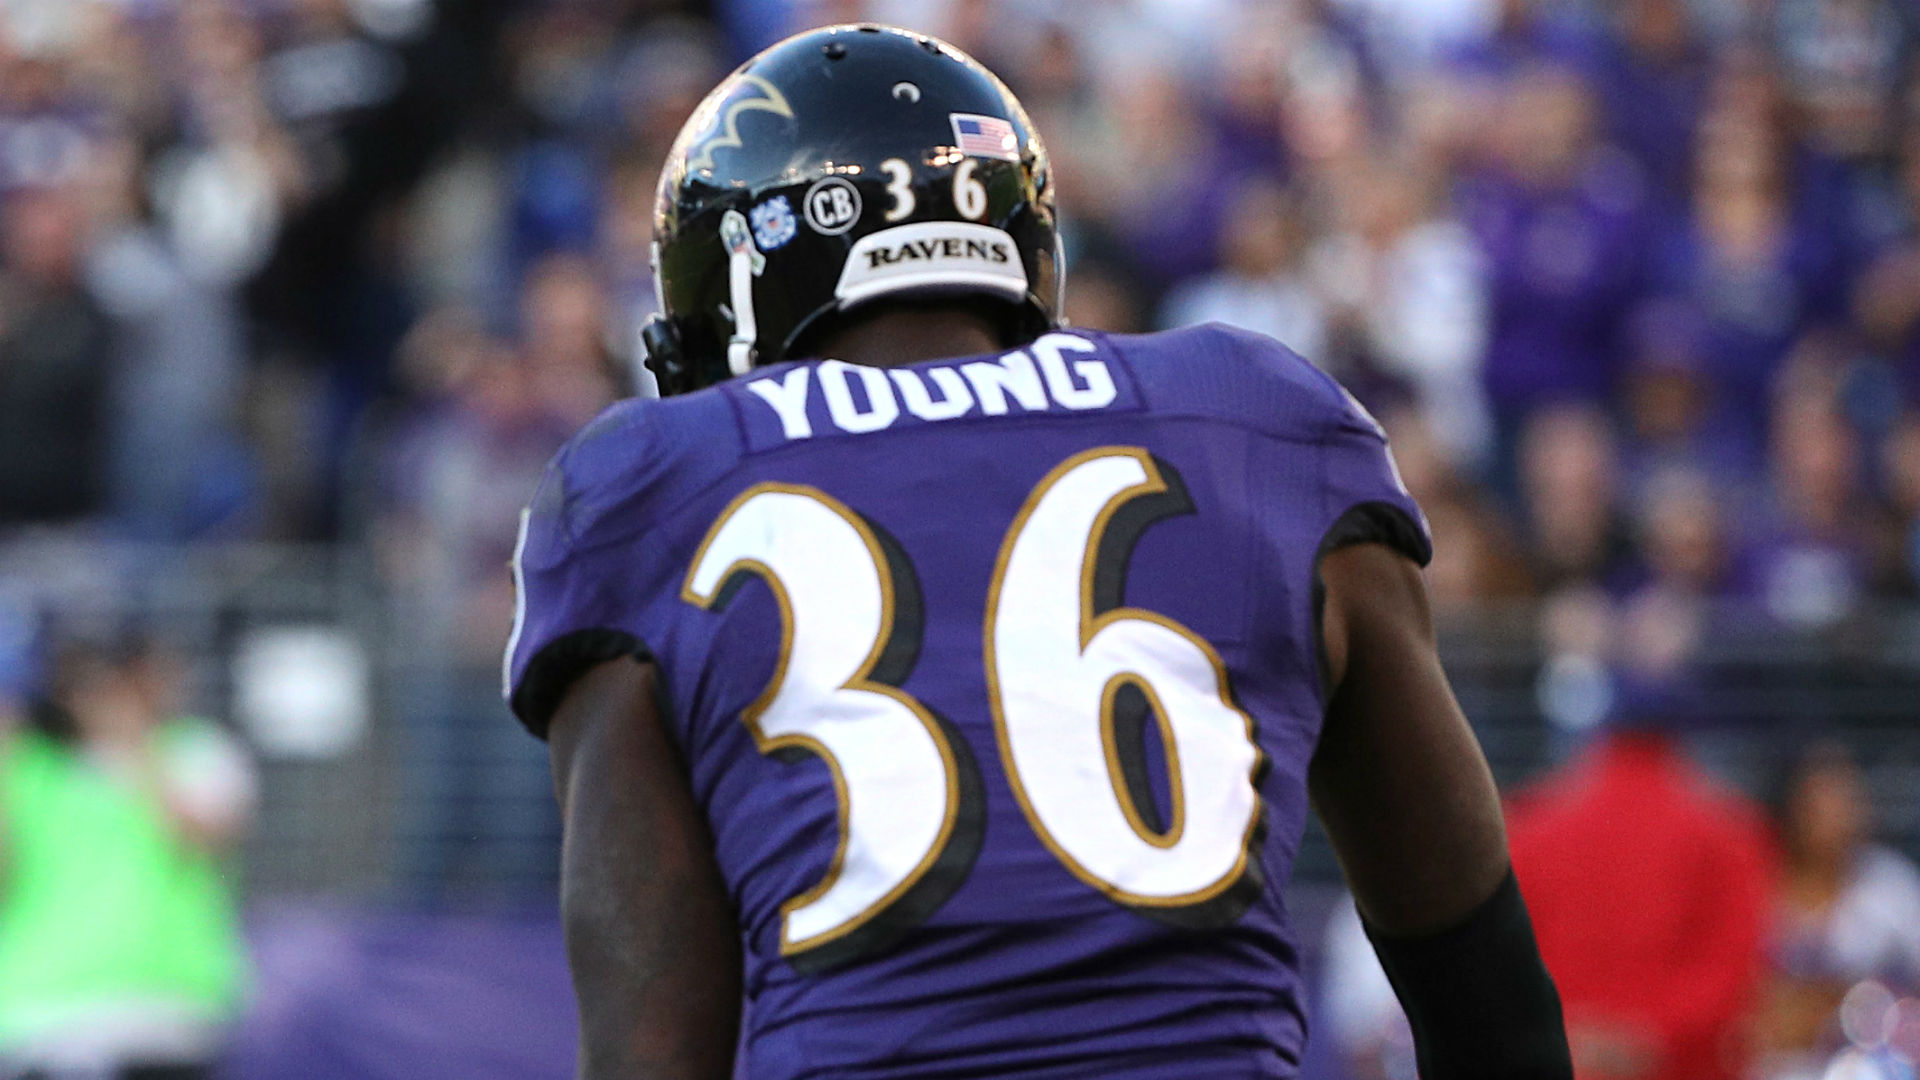 Ravens CB Young tears ACL, could be lost for 2017 season